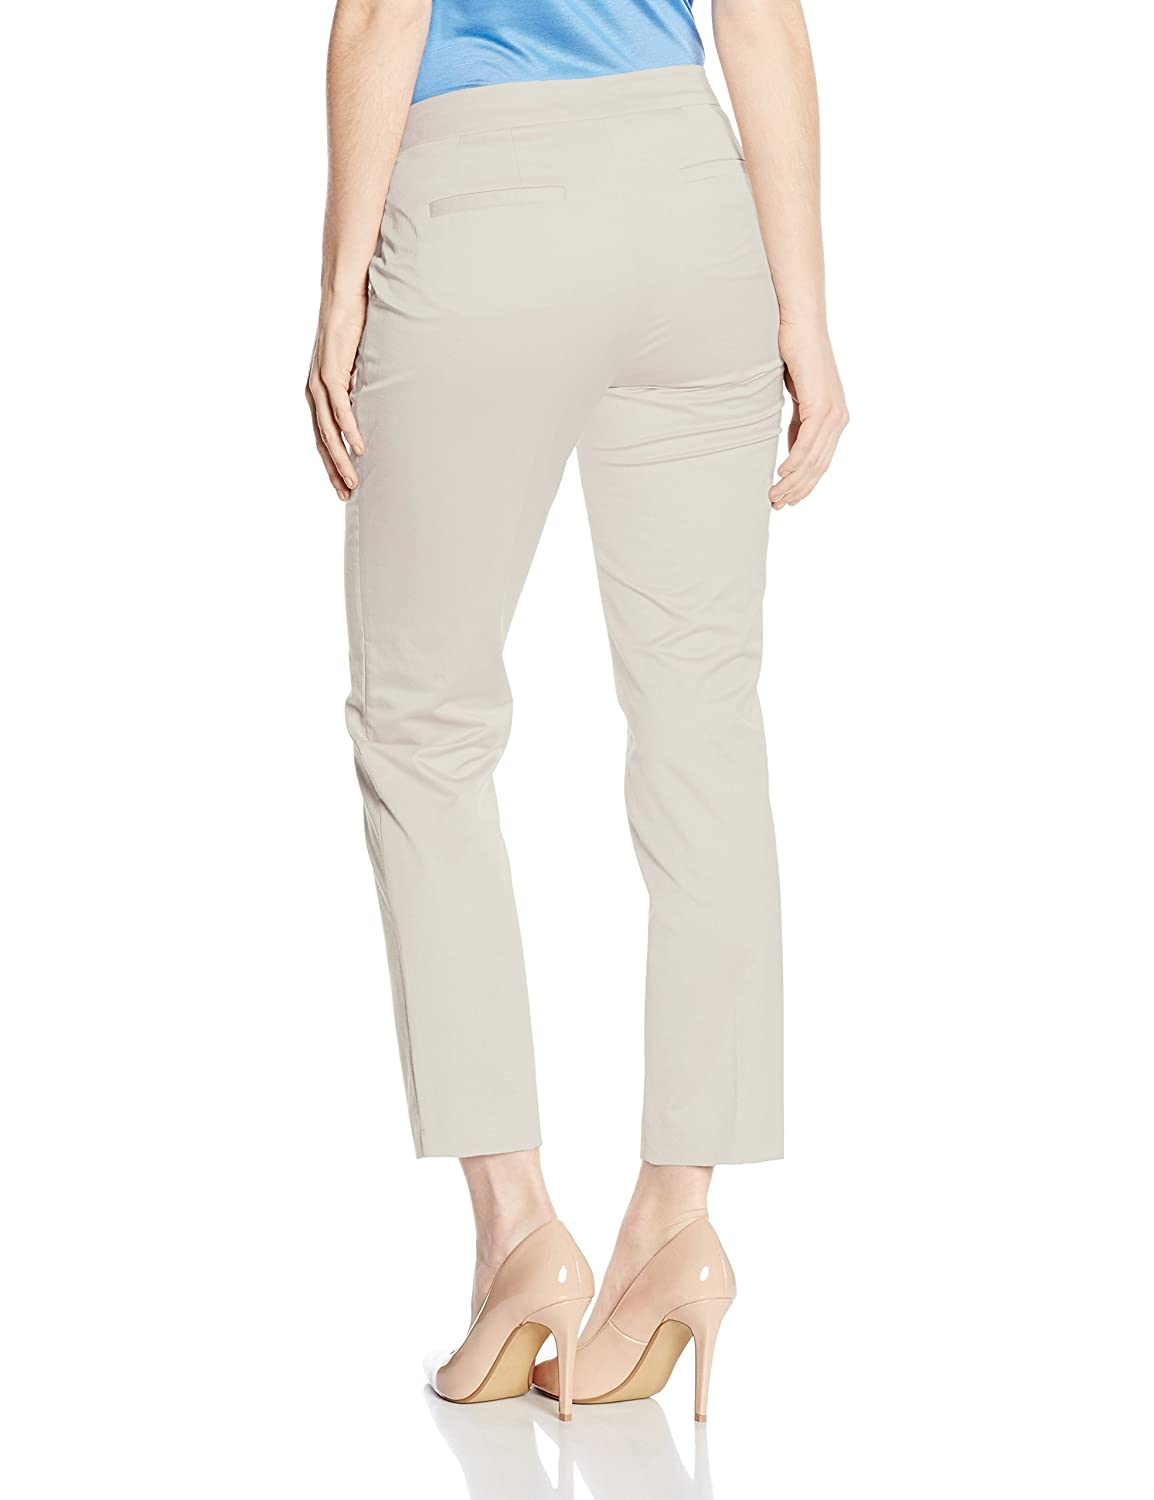 Betty Barclay Damen Hose 5454/1300